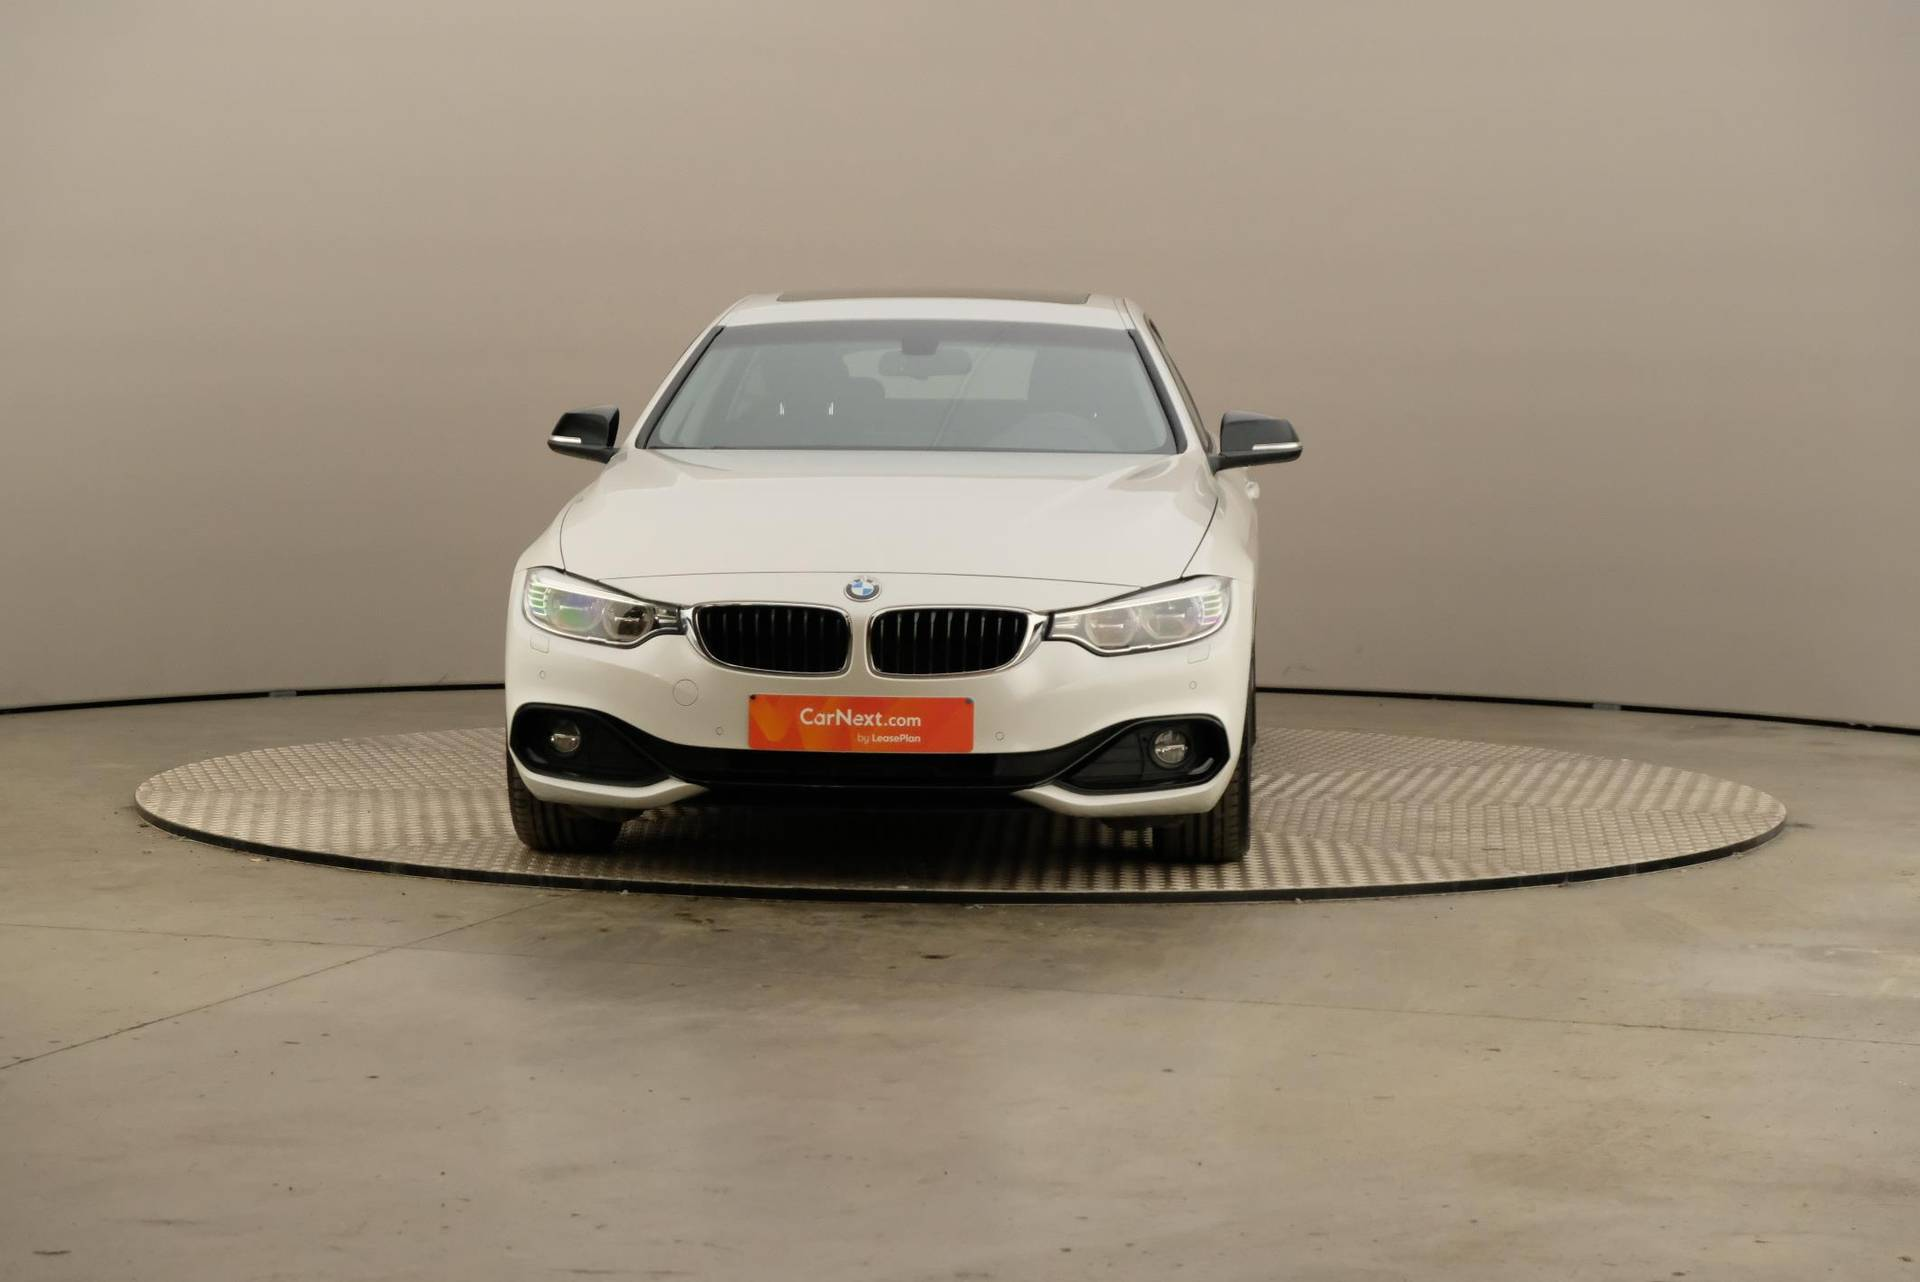 BMW 4 gran coupé 420 dA SPORT LINE LED GPS PROF PDC OPEN DAK/TO HARMAN KARDON, 360-image32